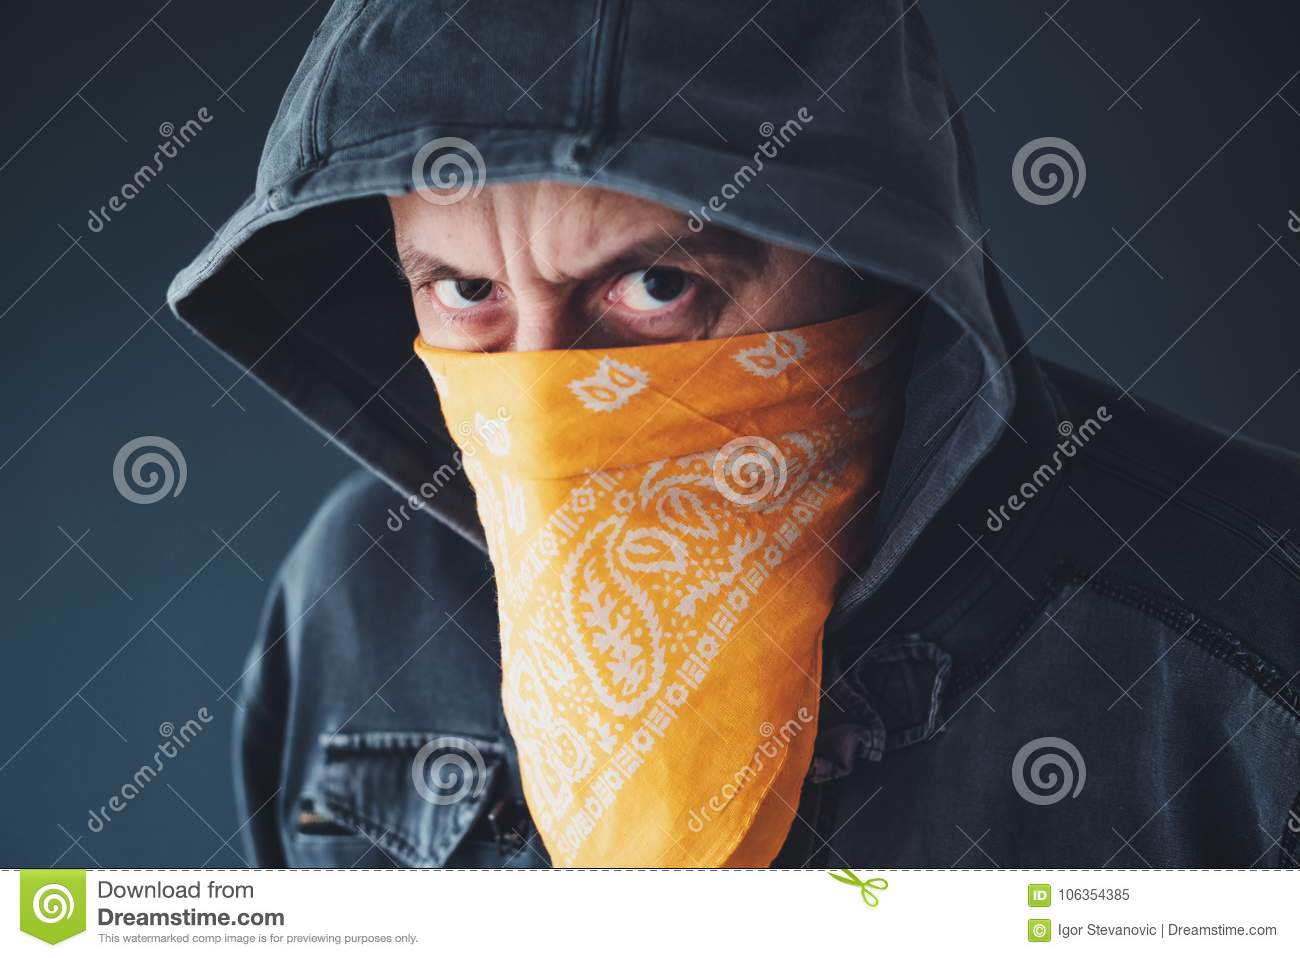 Hooded gang member criminal with scarf over face